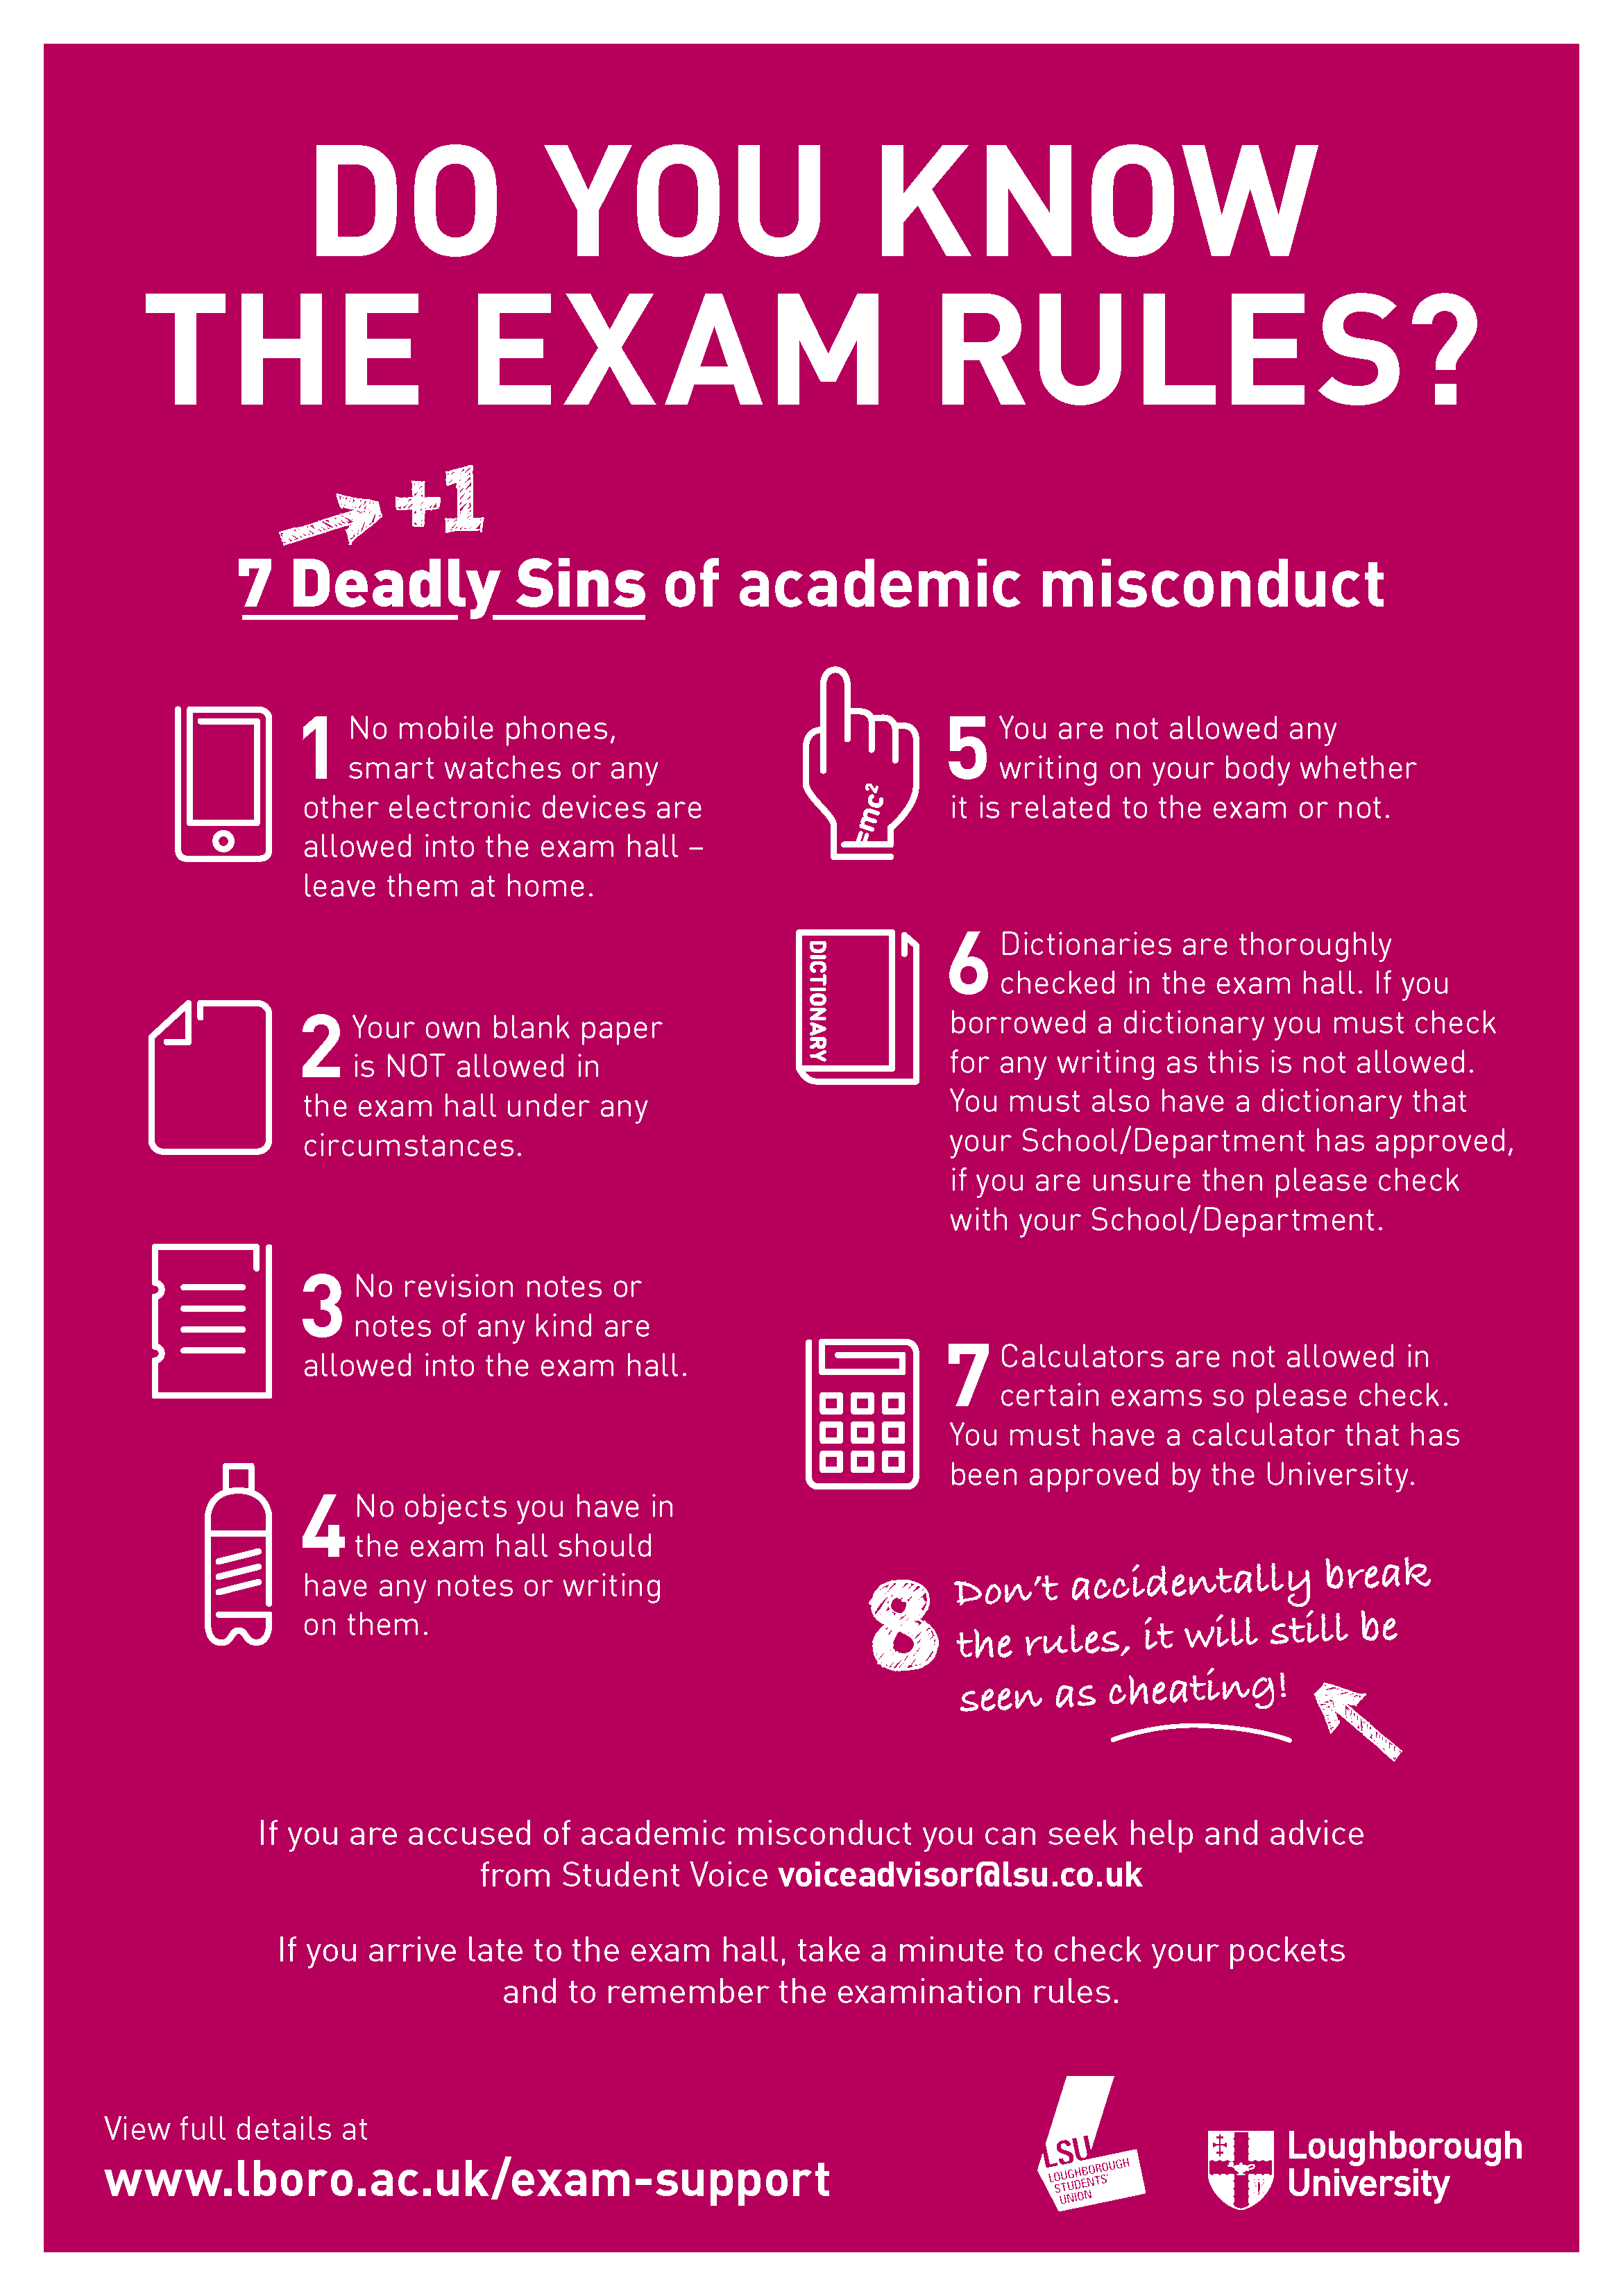 Know the Exam Rules – Avoid the 7 Deadly Sins! | ad-lib